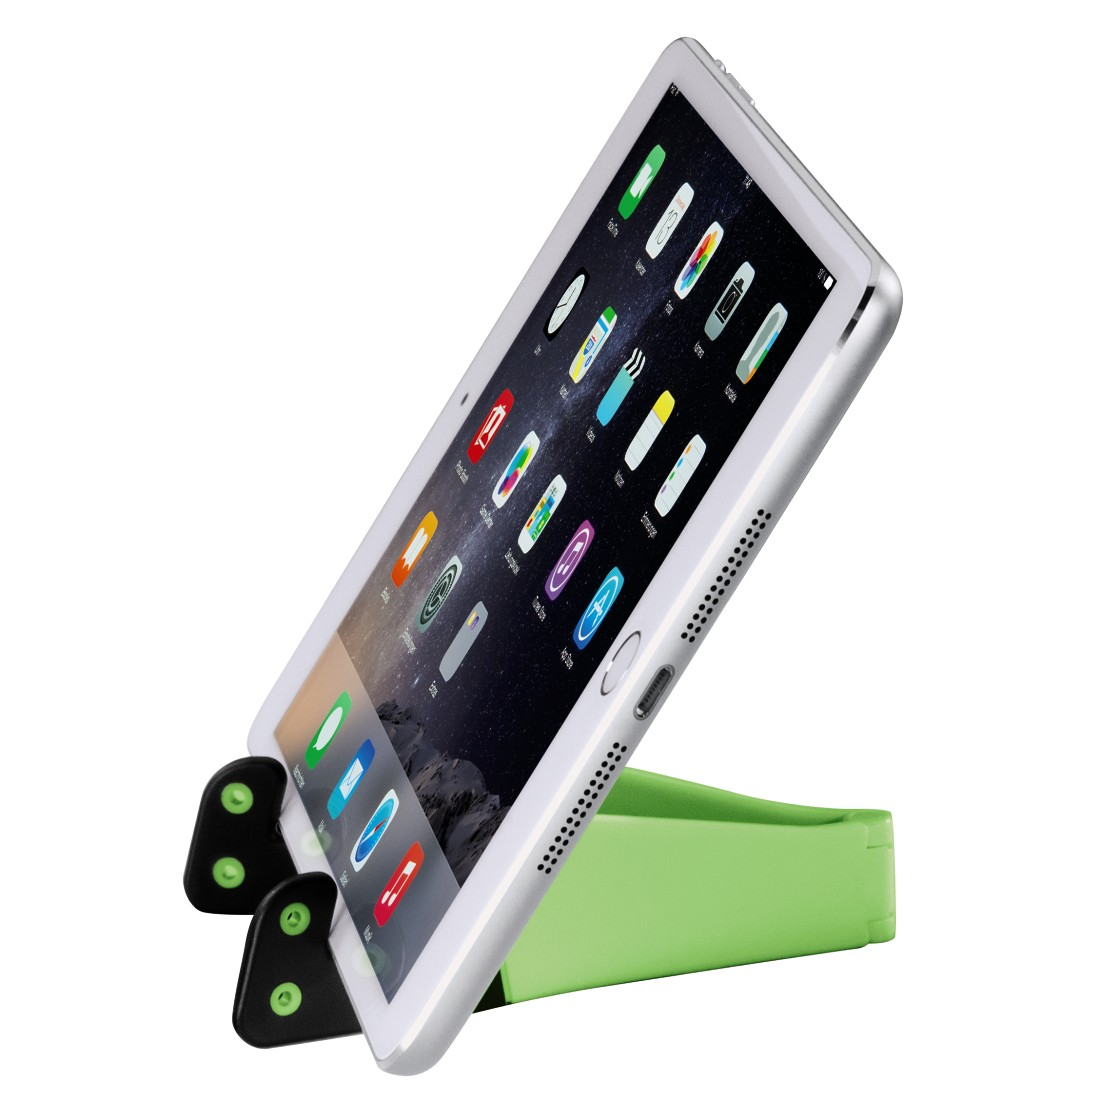 awx7 High-Res Appliance 7 - Hama, Travel Holder for Tablets and Smartphones, 20 pieces in a display box